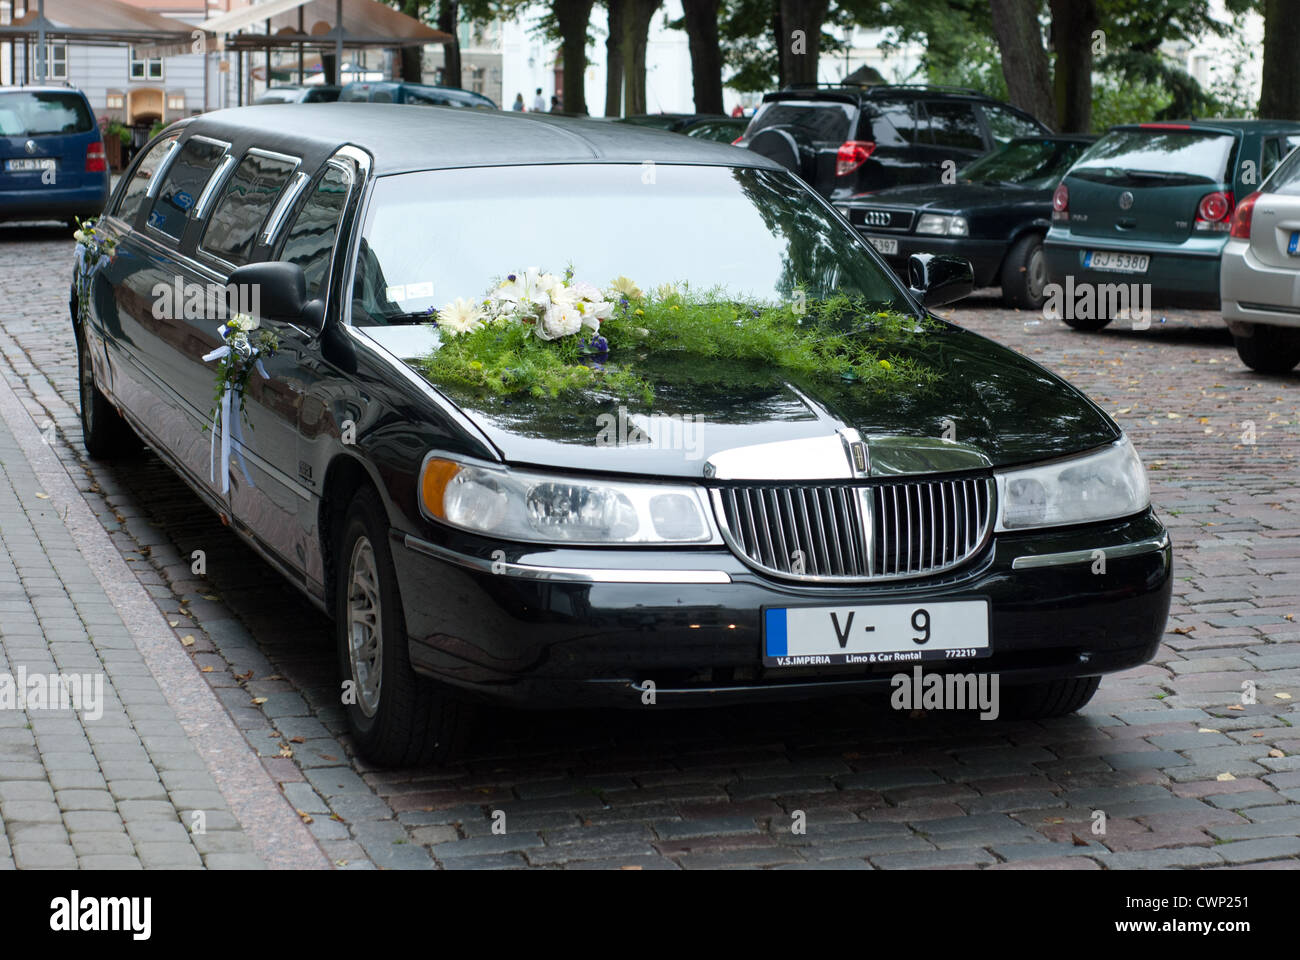 hight resolution of wedding limo lincoln town car black stock image